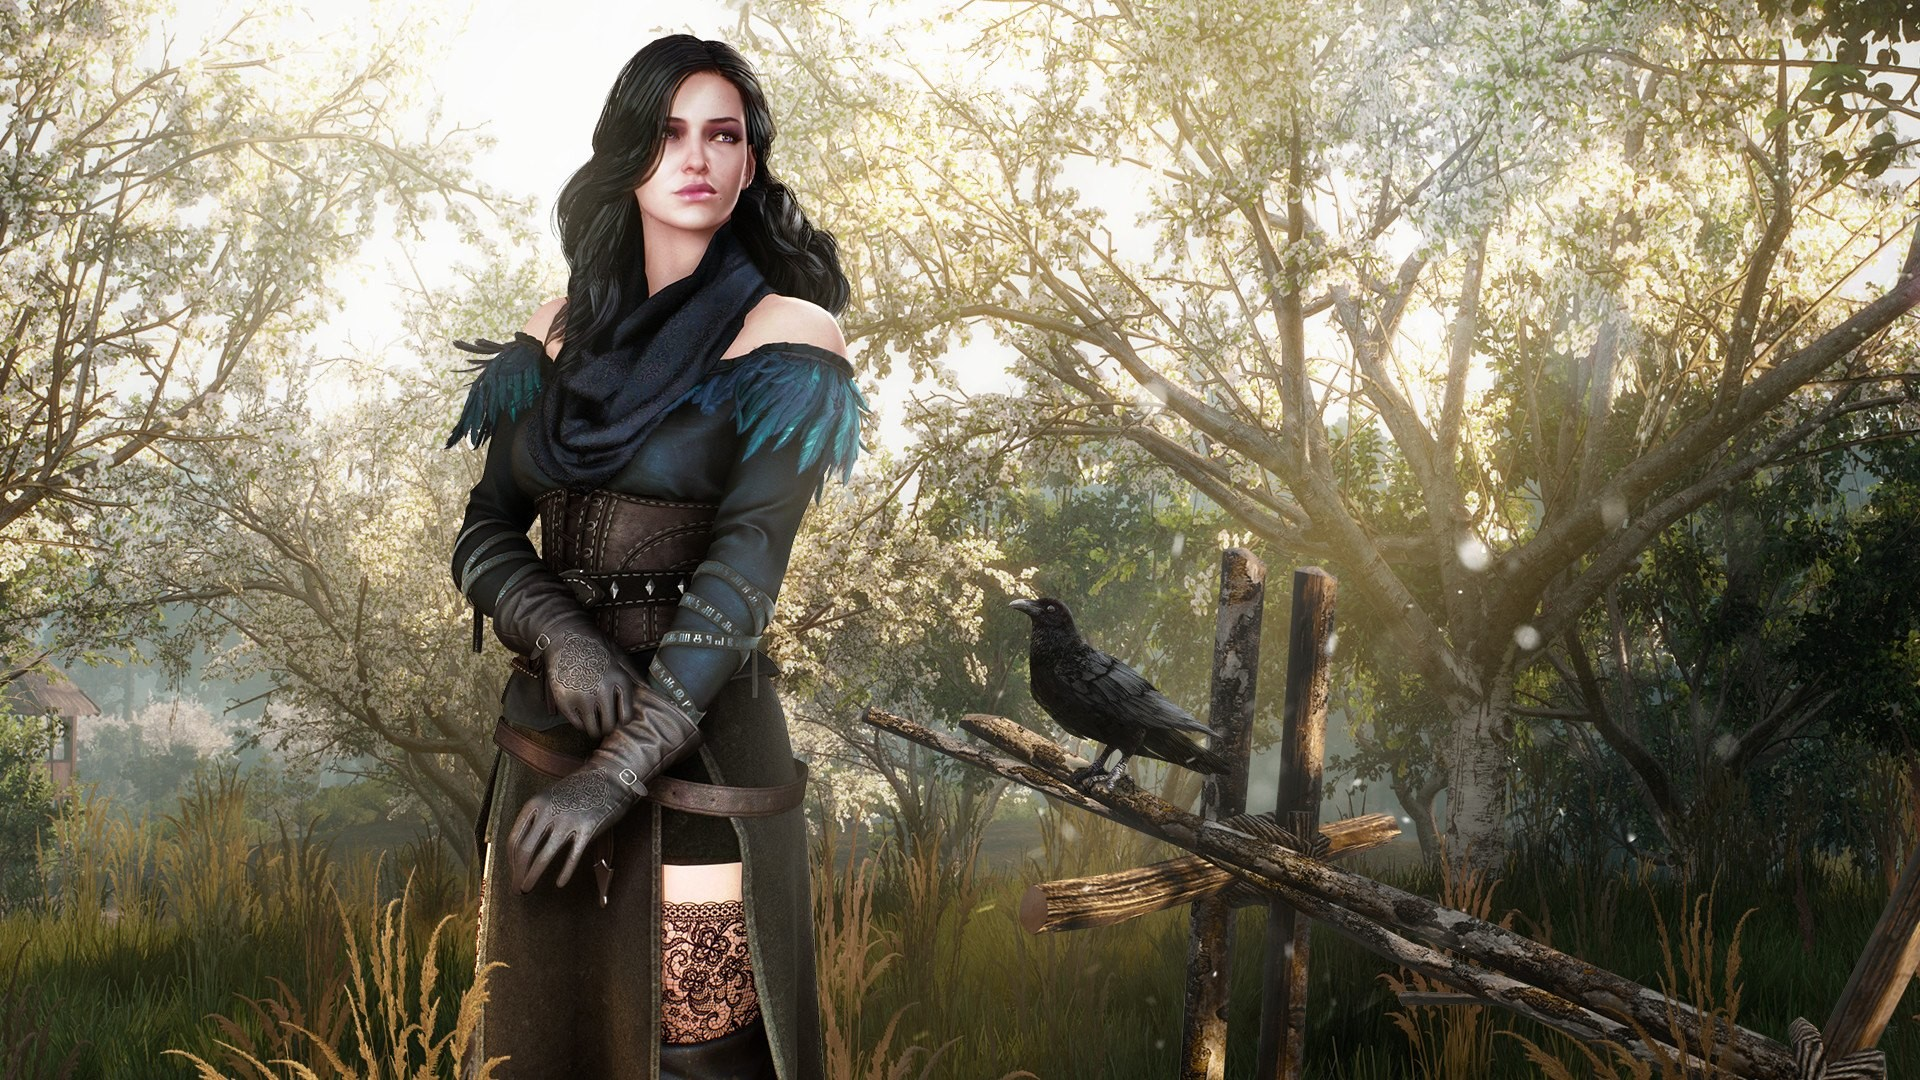 Yennefer is also getting an expanded romance